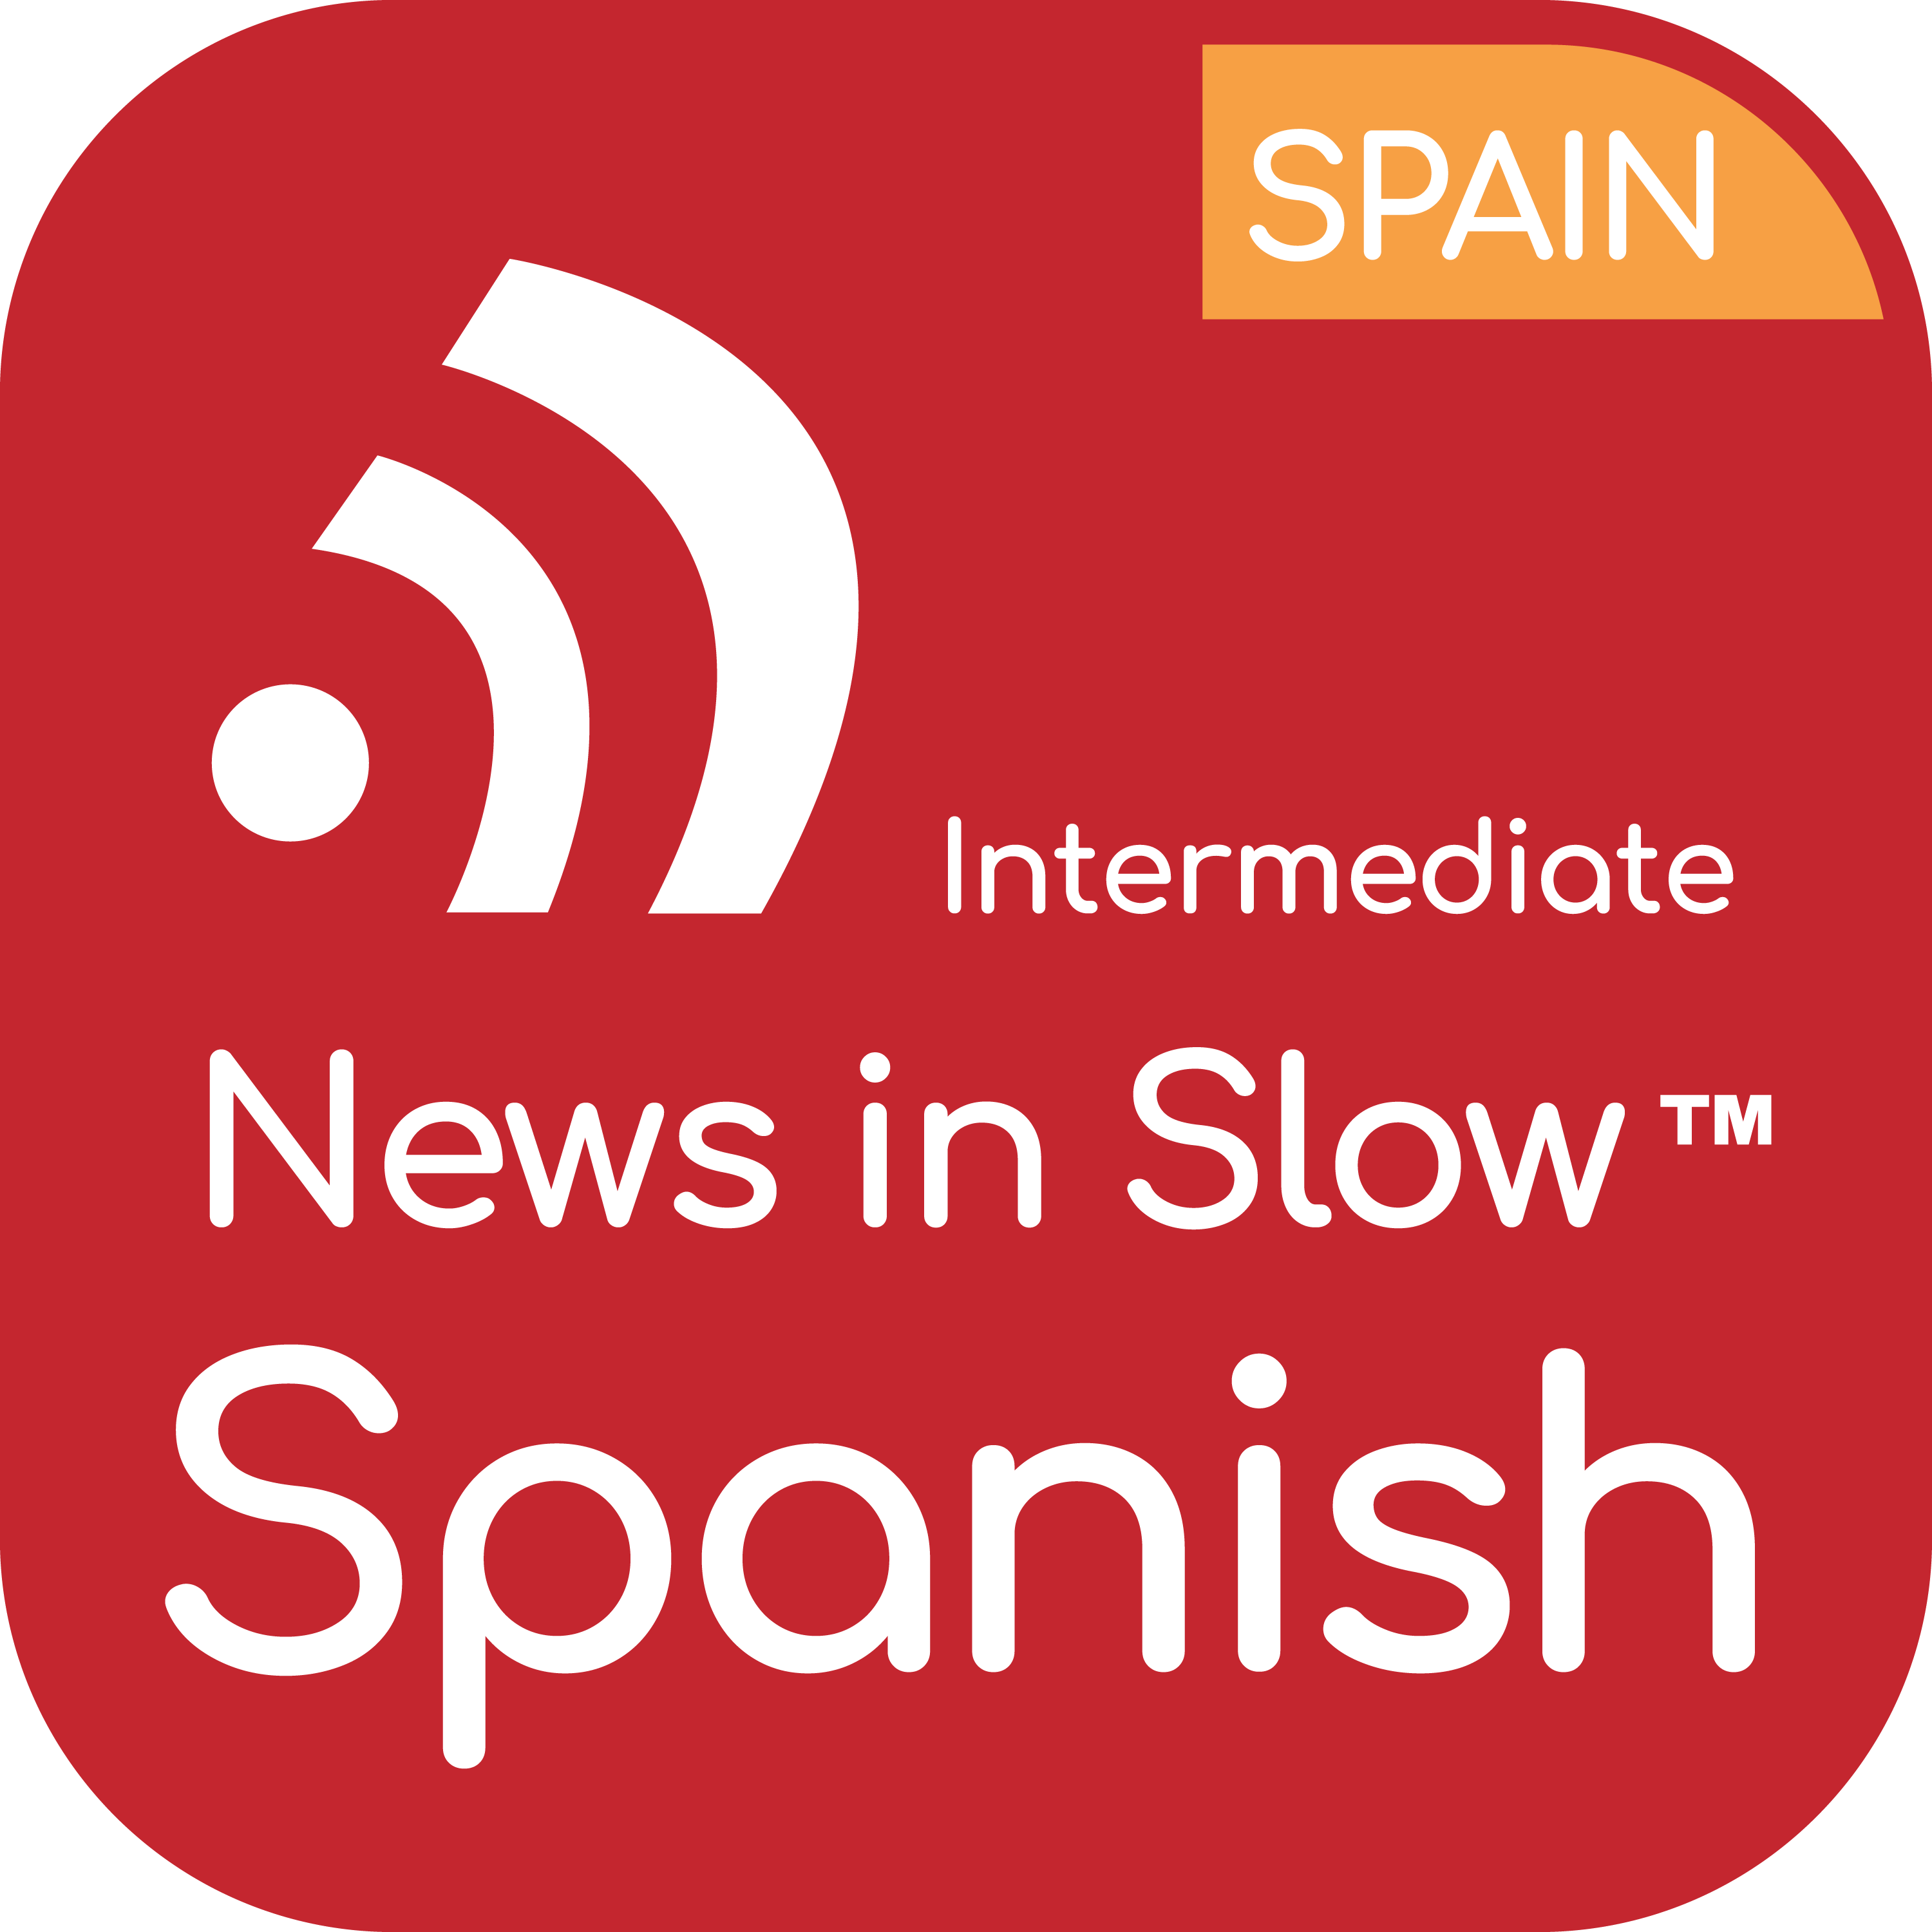 News in Slow Spanish - #626 - Spanish Grammar, News and Expressions